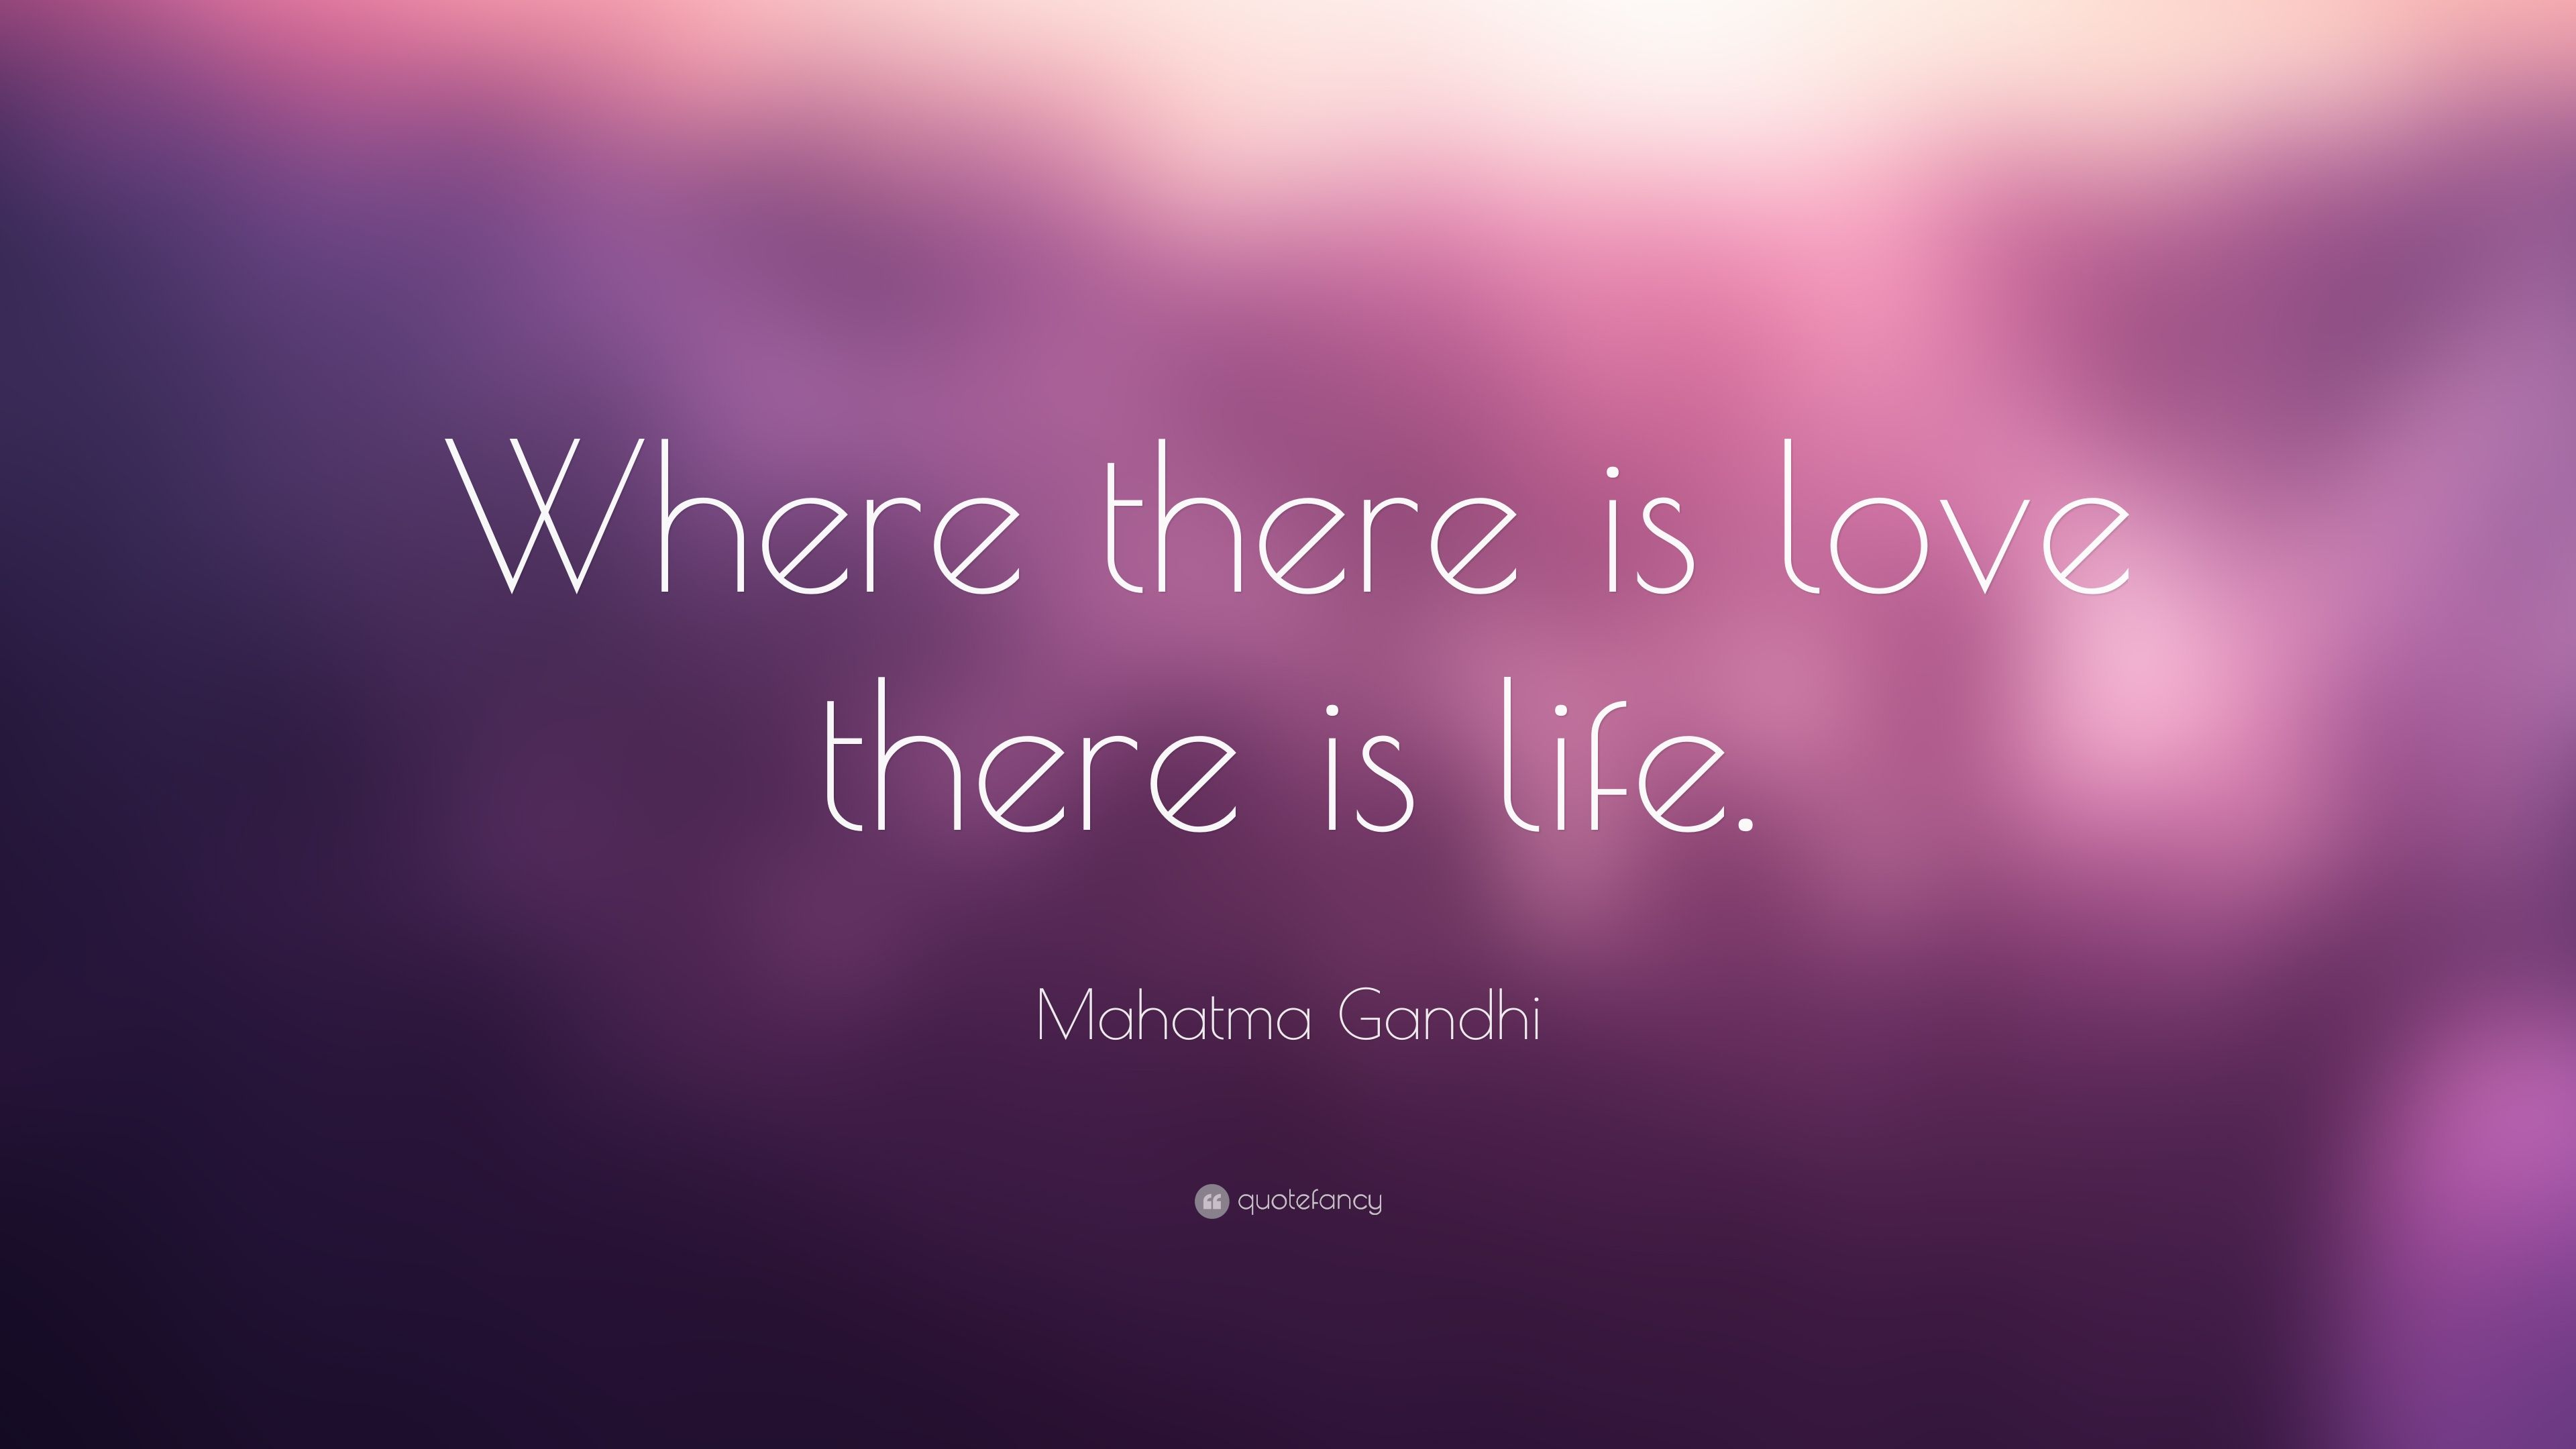 Love Quotes Where There Is Love There Is Life Mahatma Gandhi Love Quotes Wallpaper Cute Love Quotes Love Quotes For Her